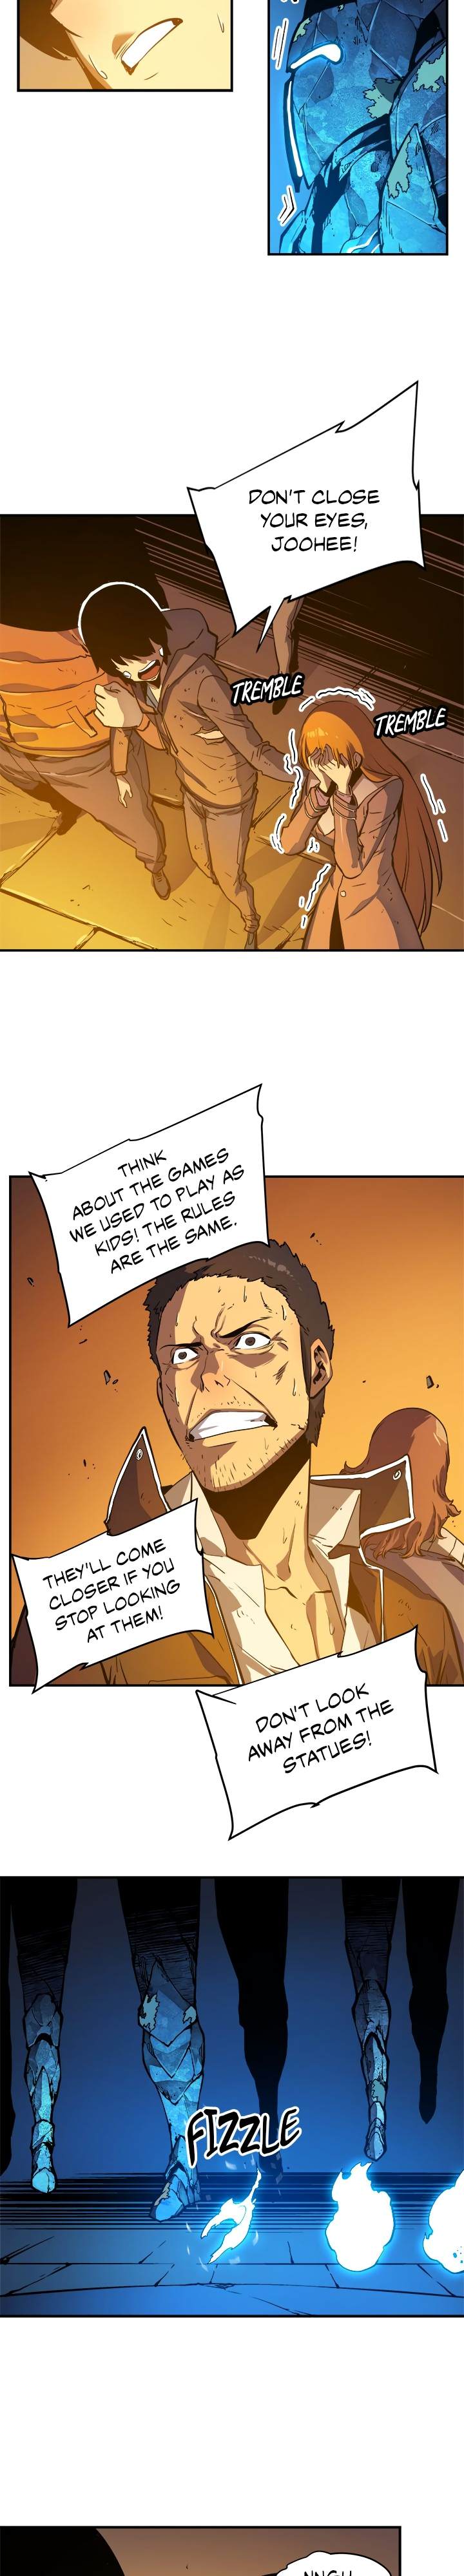 Solo Leveling, Chapter 9 image 004